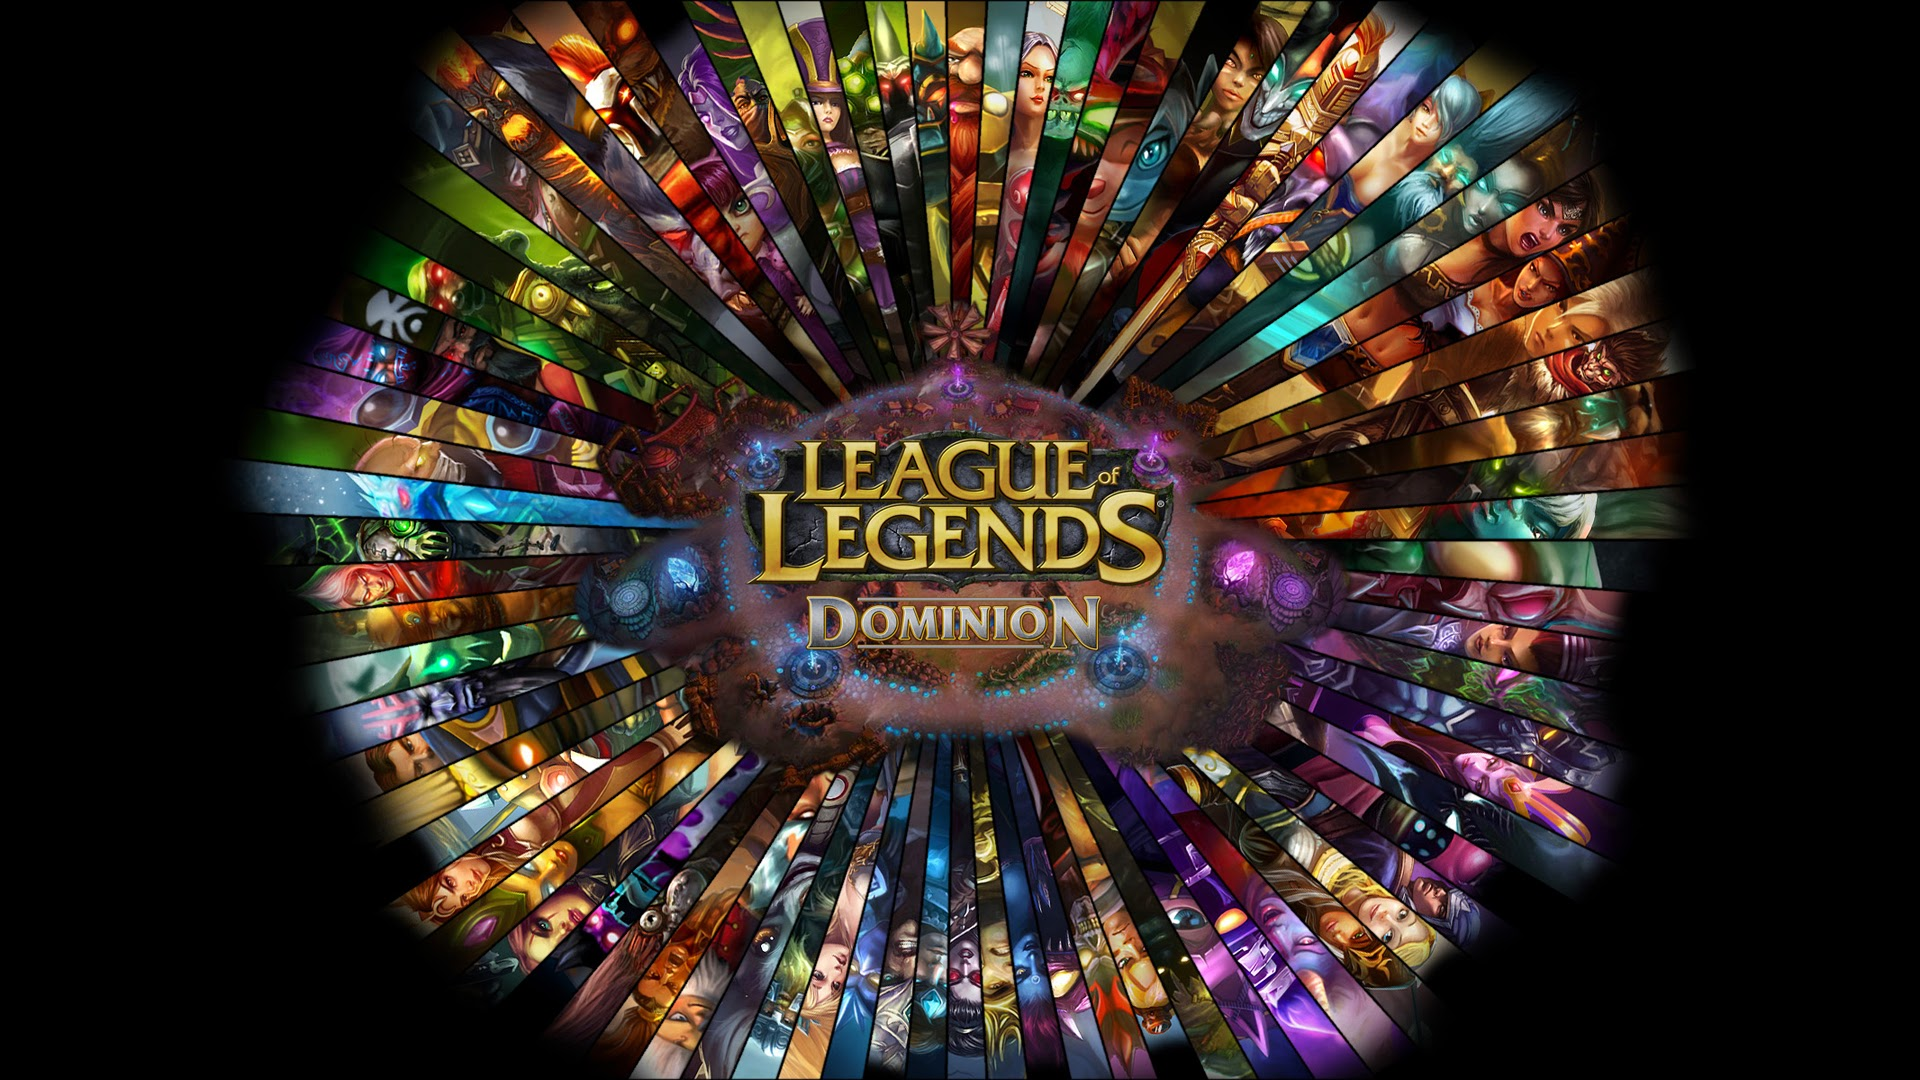 League Of Legends Wallpaper Hd Wallpapers Quality